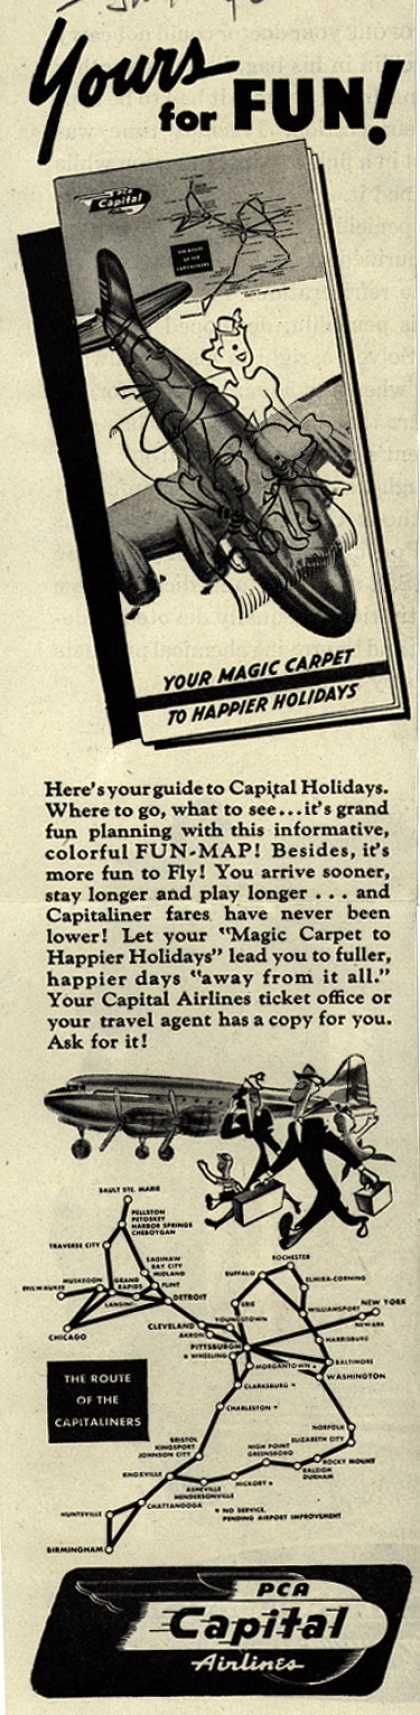 PCA Capital Airline's Fun-Map – Yours for Fun (1946)